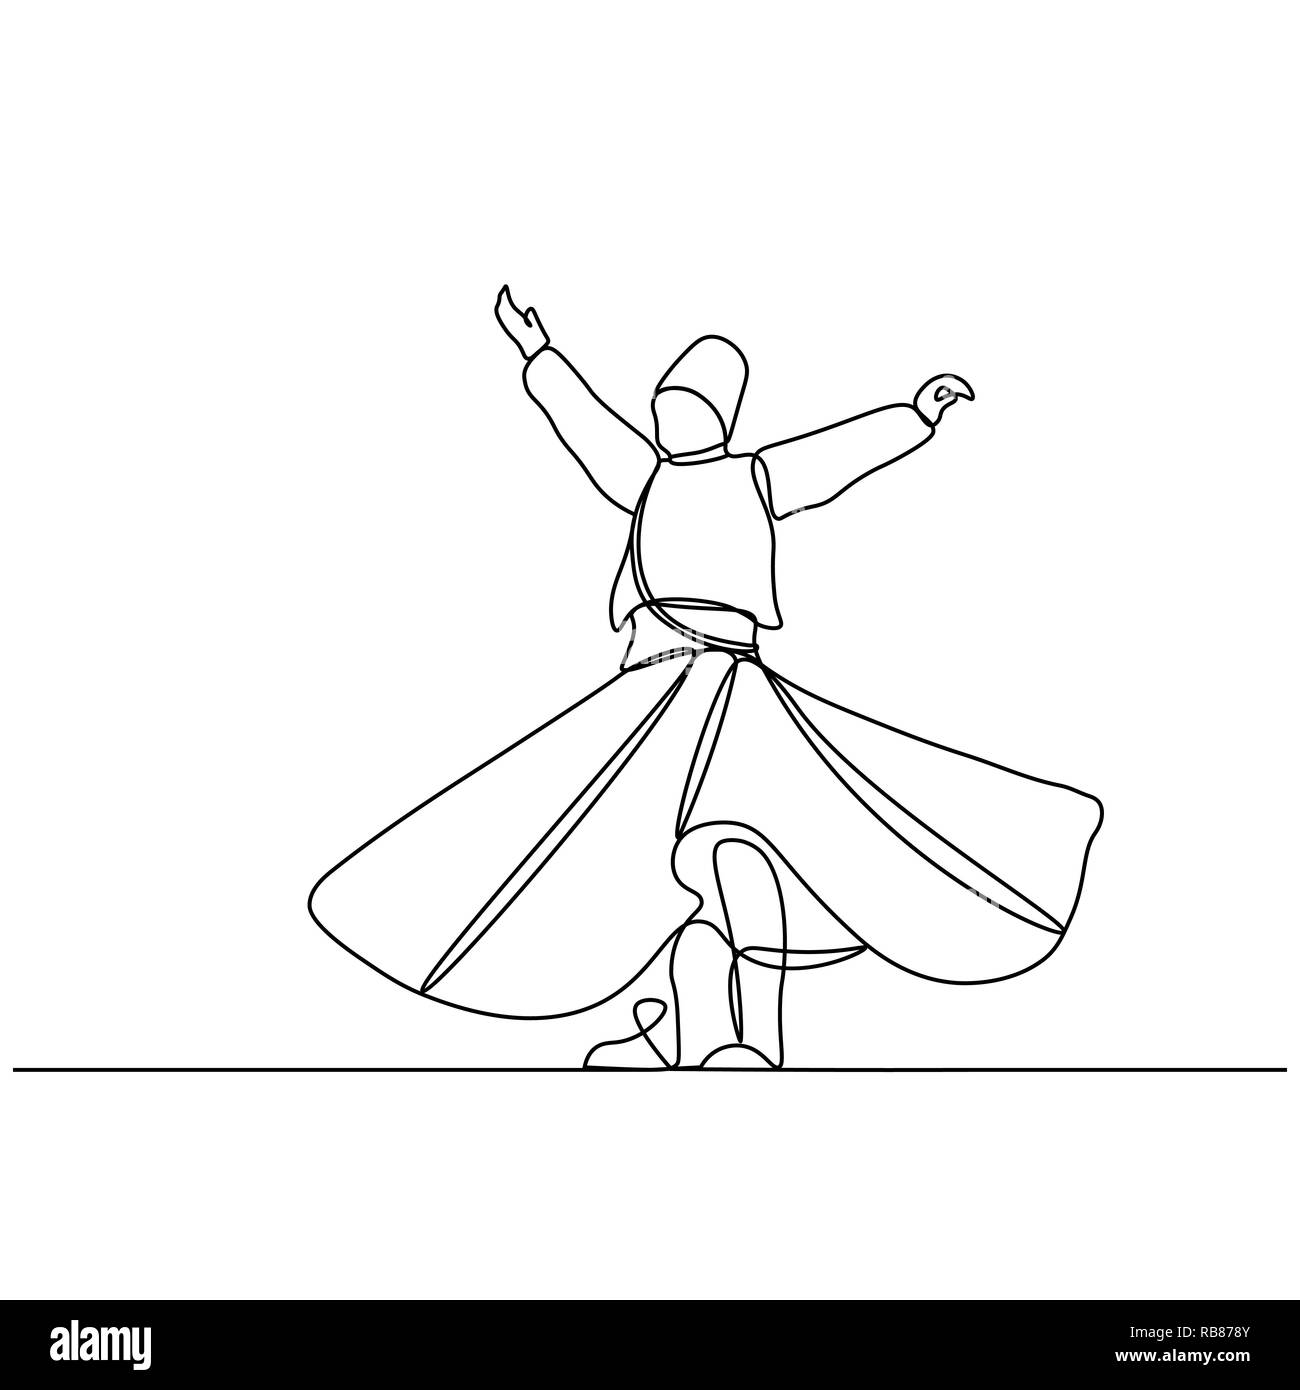 whirling dervish vector drawing. Vector illustration drawn with one line - Stock Image